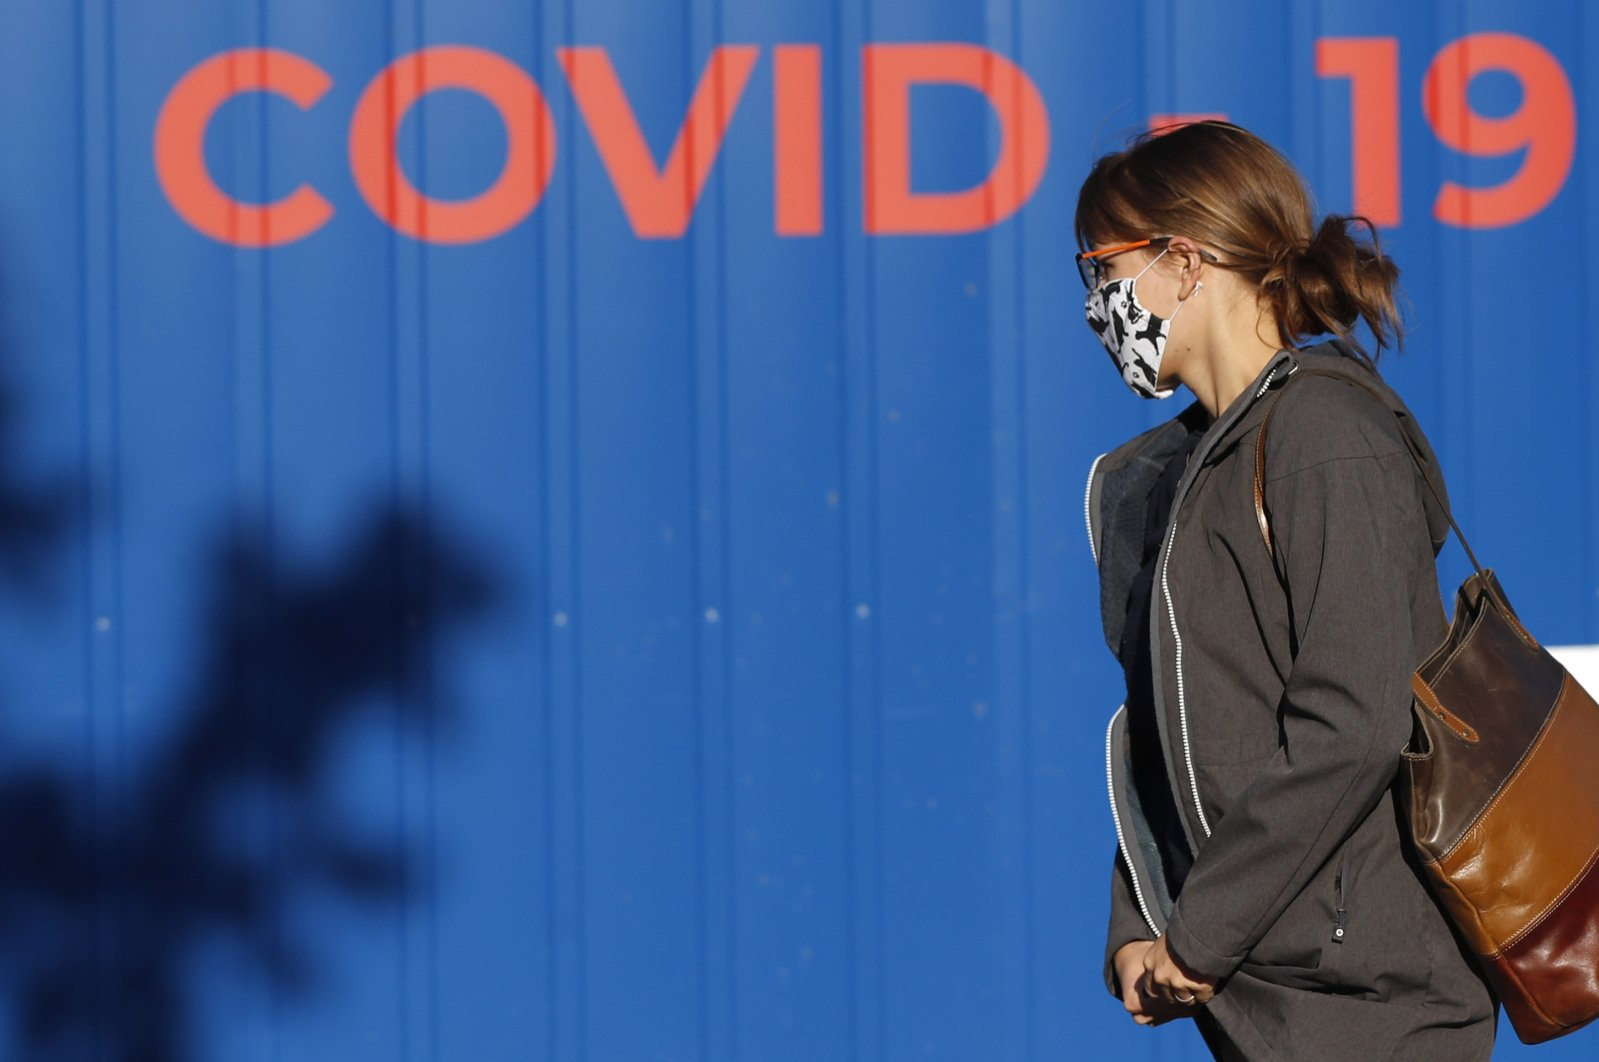 A woman wearing a face mask walks to get tested for COVID-19 at a sampling station in Prague, Czech Republic, Sept. 18, 2020. (AP Photo)